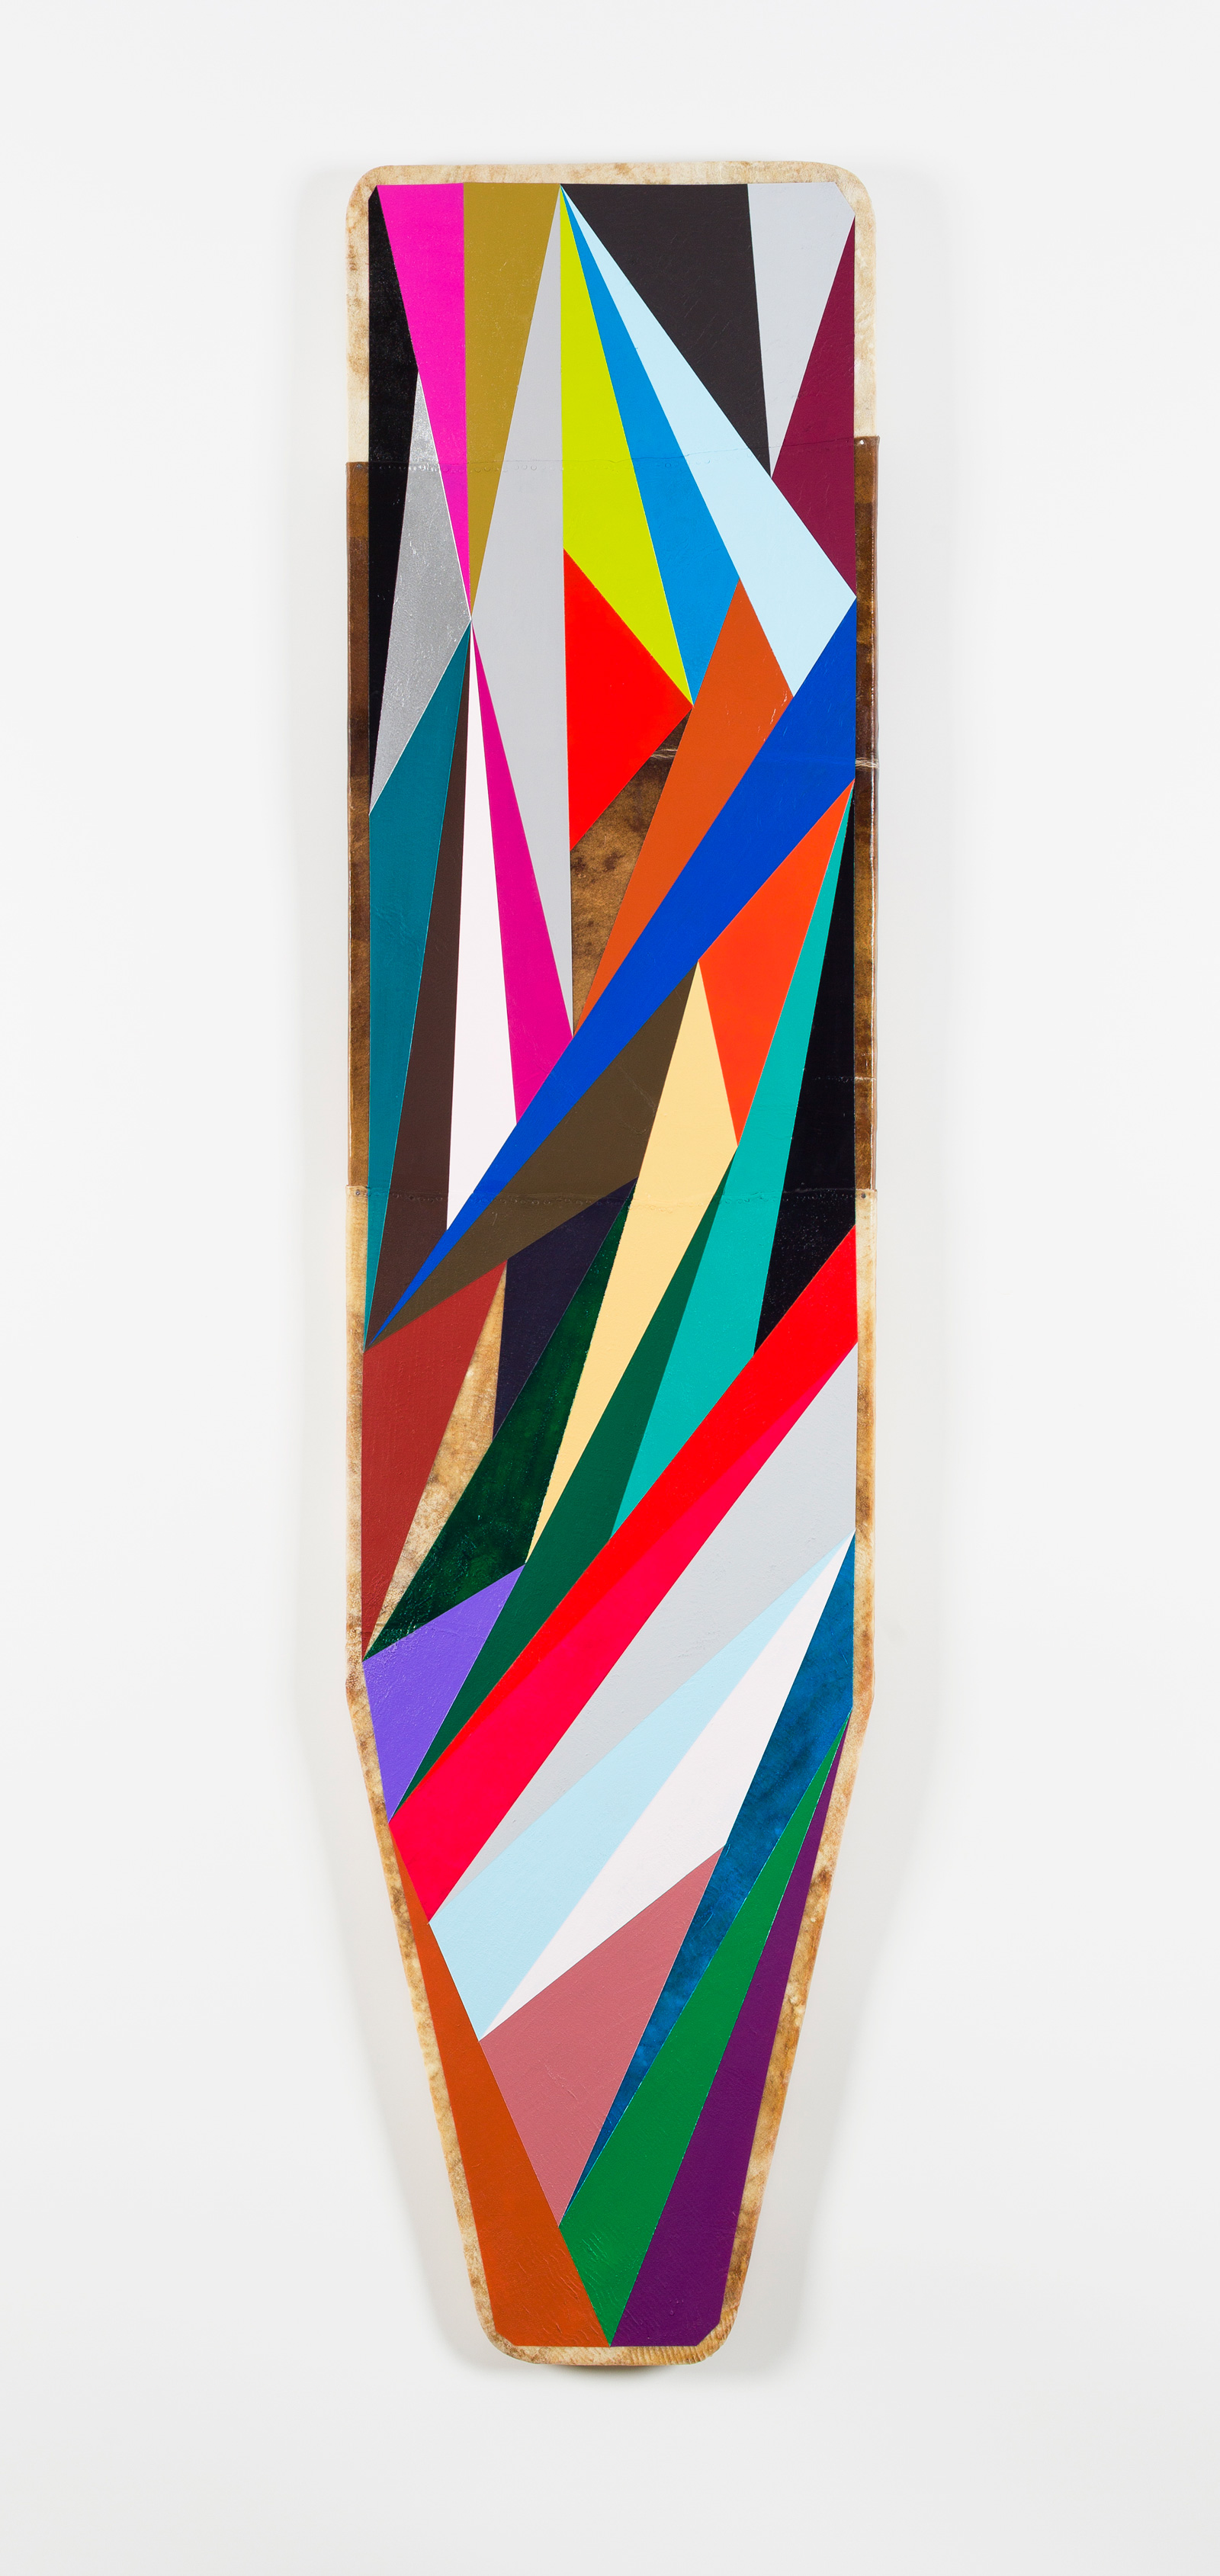 2013 Elk hide over antique ironing board, acrylic paint, graphite 54 x 13 inches (137.2 x 33 cm)  - Marc Straus Gallery